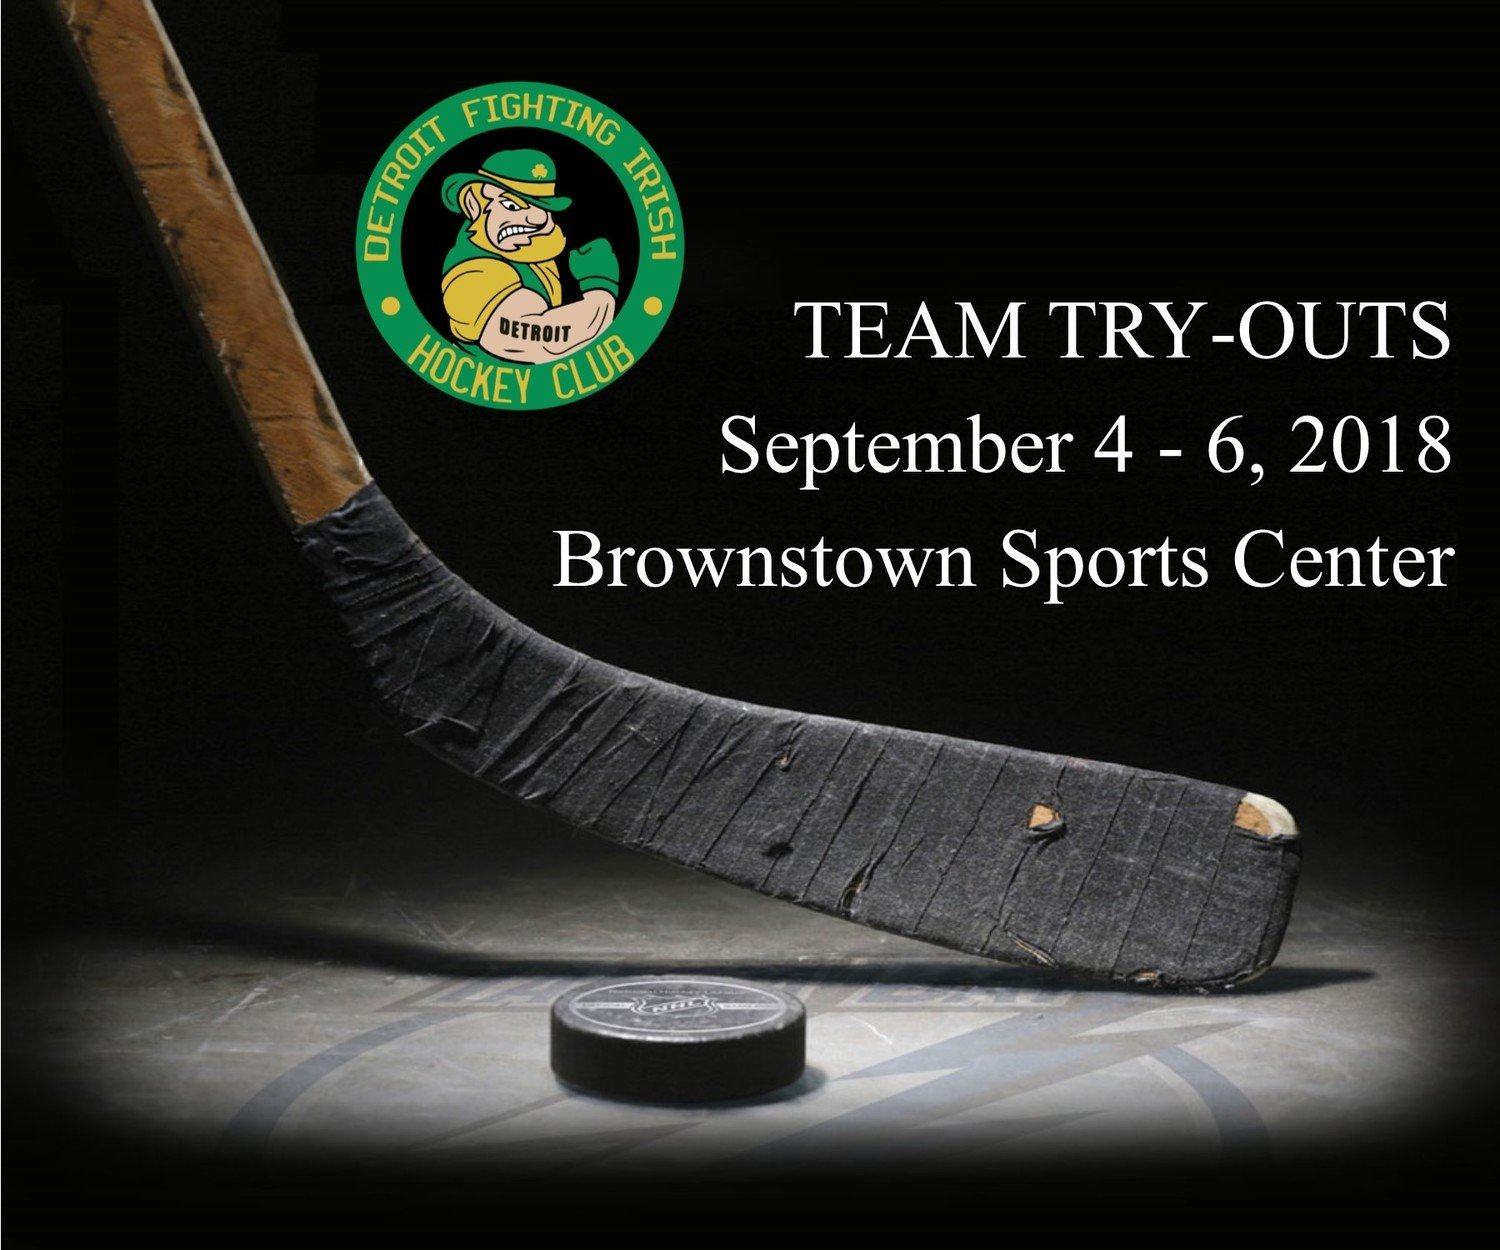 Team Tryouts - September 4-6, 2018